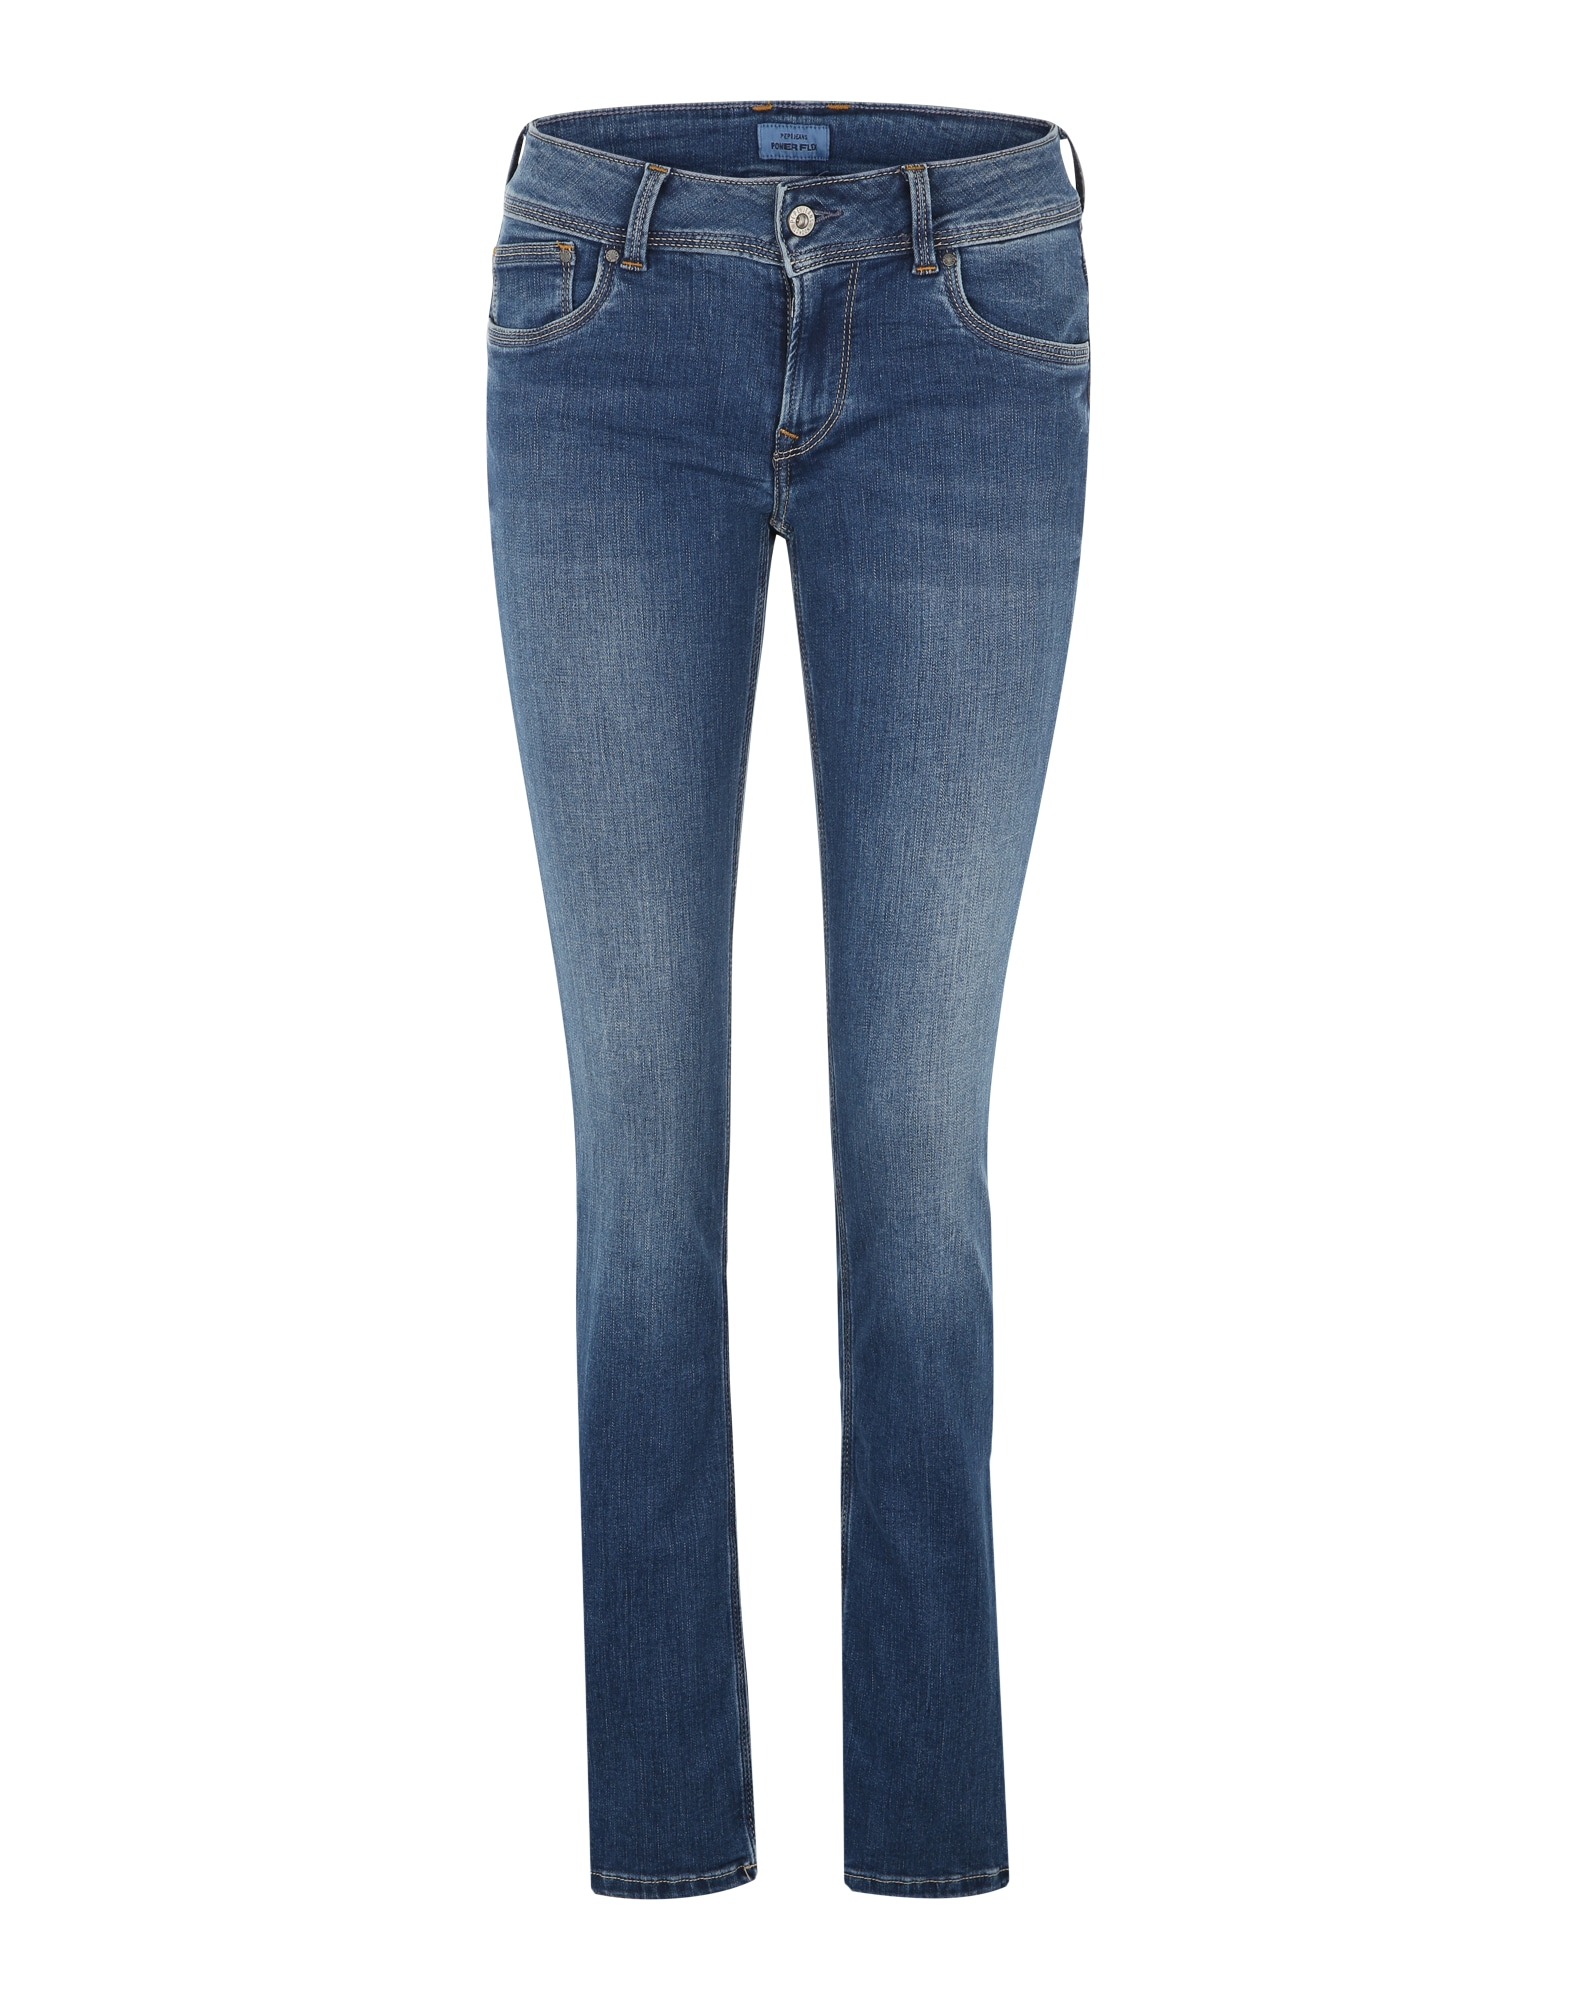 Pepe Jeans Dames Jeans Saturn blauw